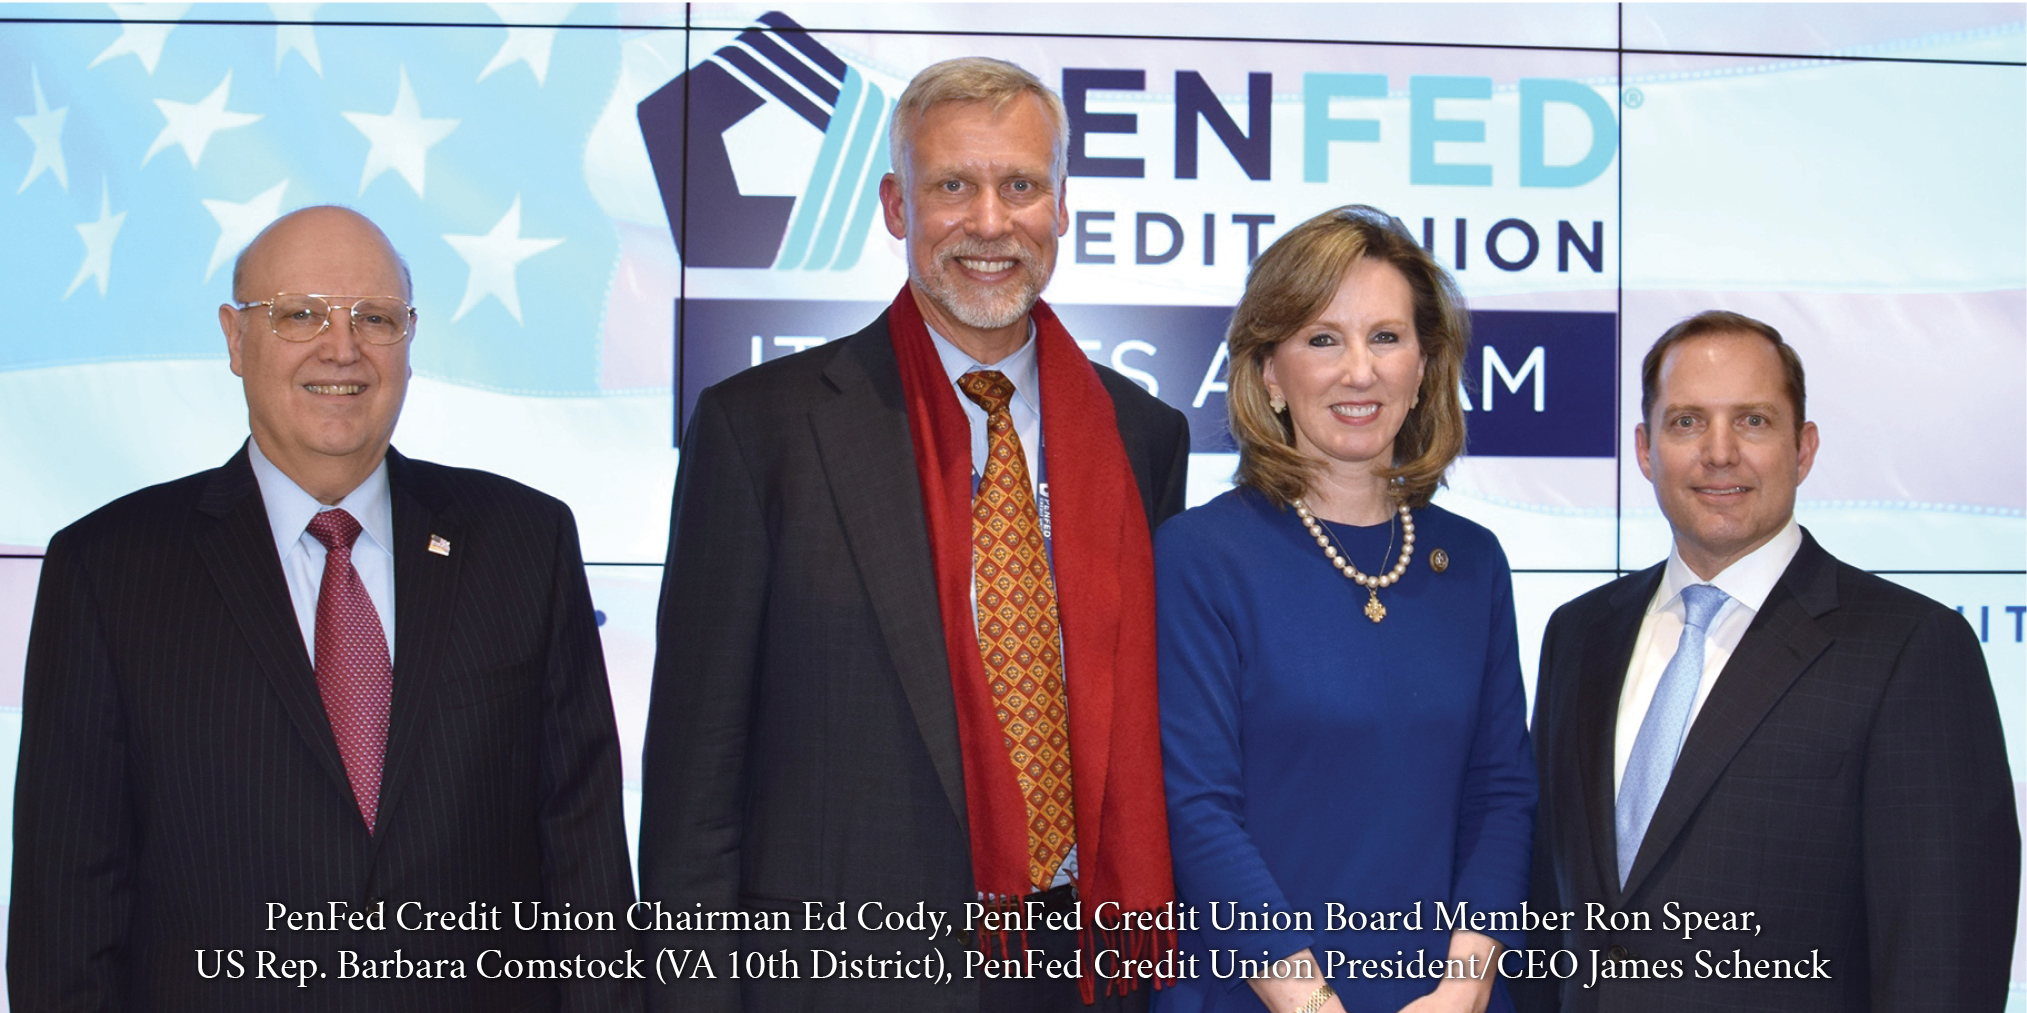 PenFed Credit Union Chairman Ed Cody, PenFed Credit Union Board Member Ron Spear, US Rep. Barbara Comstock (VA 10th District), PenFed Credit Union President/CEO James Schenck